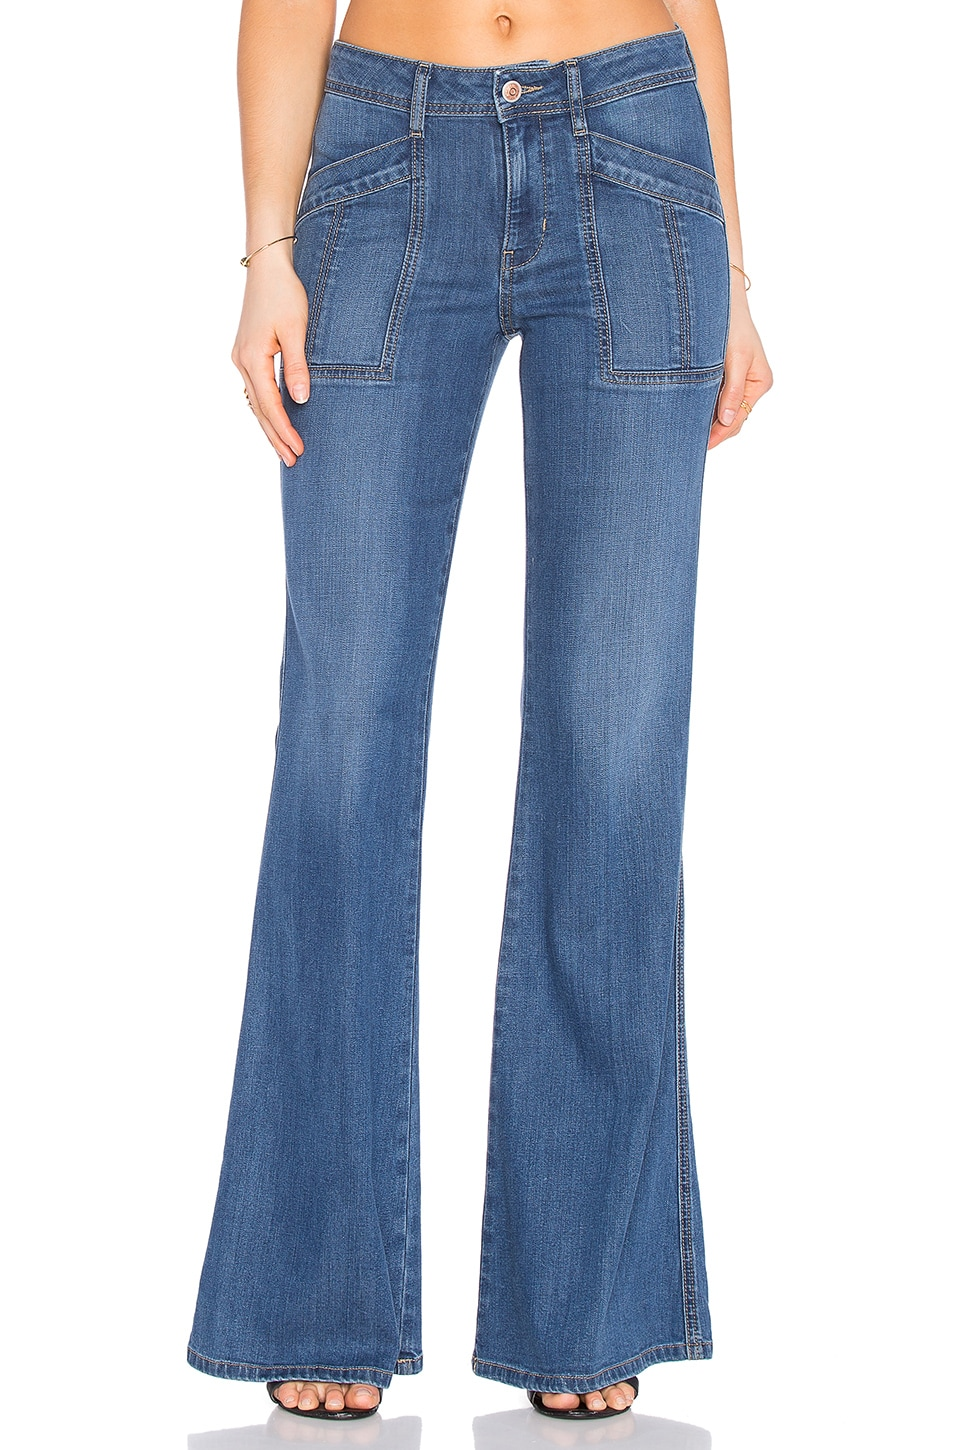 Evelyn Pant by Level 99